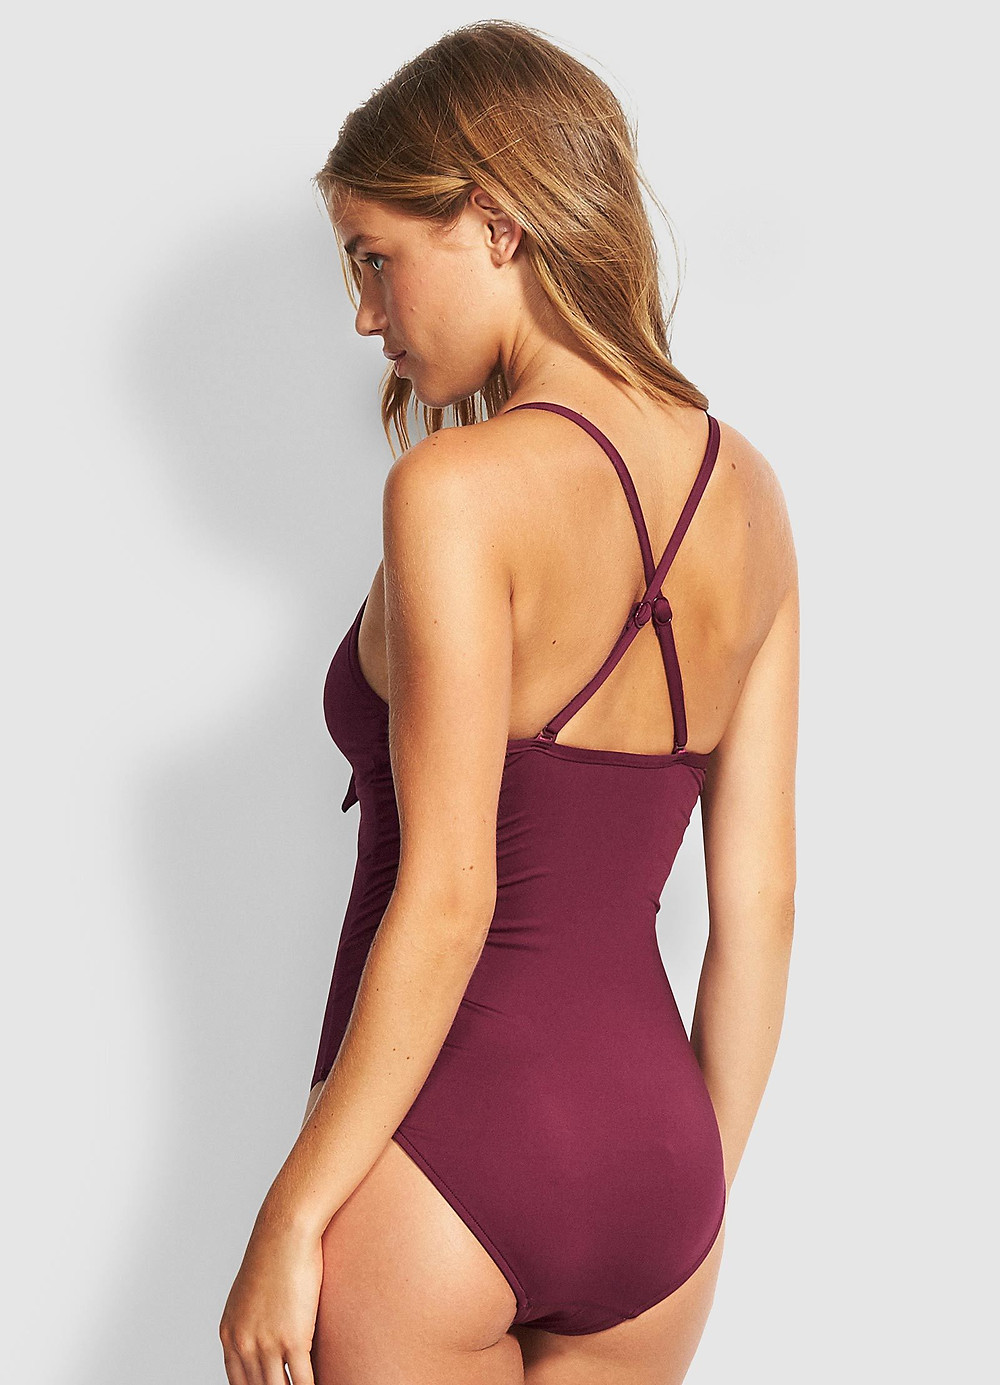 SEAFOLLY TIE FRONT ONE PIECE AUD $169.95 AUD $76.48